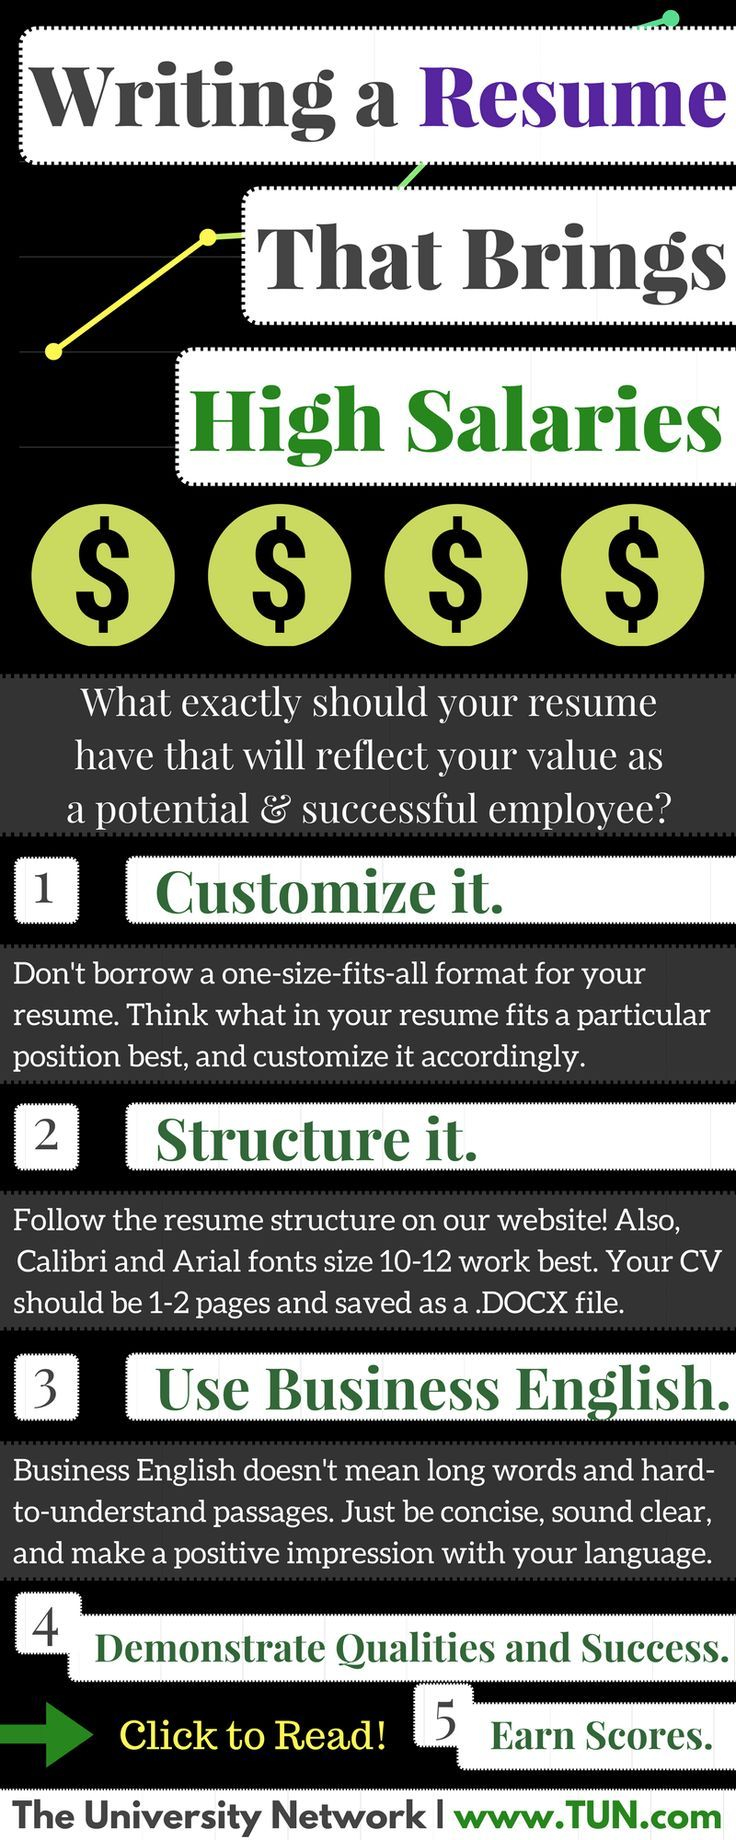 Every word of your resume should cry about your worth for employers to understand you deserve a high salary. But what exactly should you write there and how to do that to succeed?